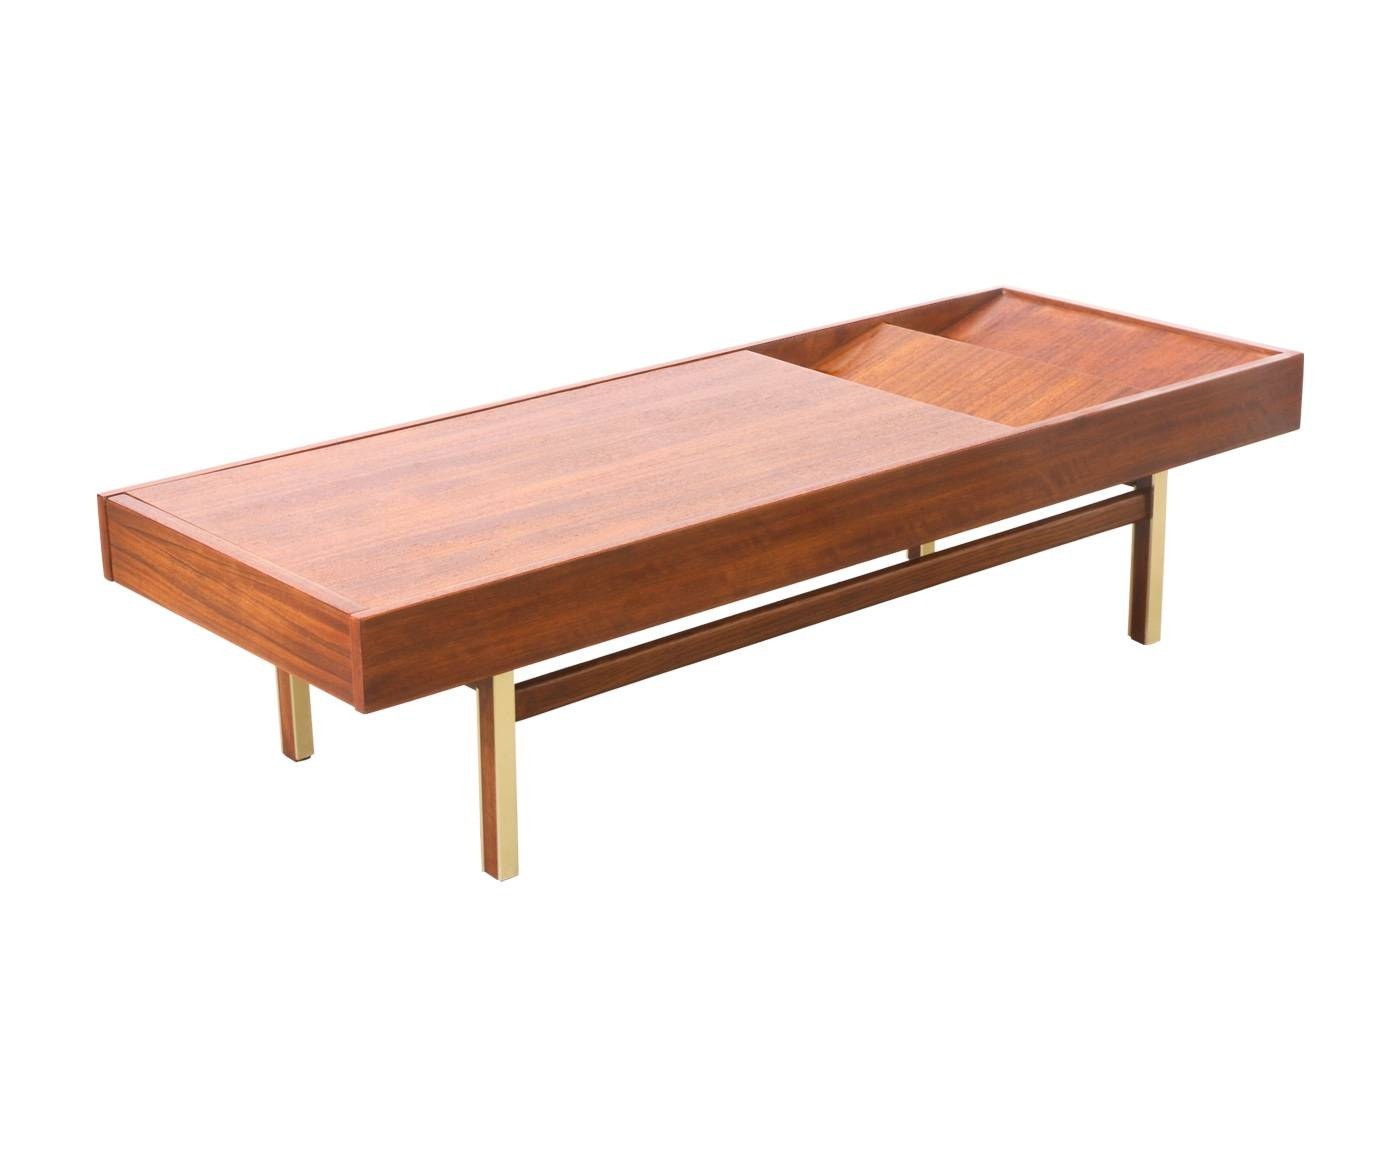 American Of Martinsville Magazine Coffee Table | Danish Modern L.a with regard to Coffee Tables With Magazine Storage (Image 4 of 30)